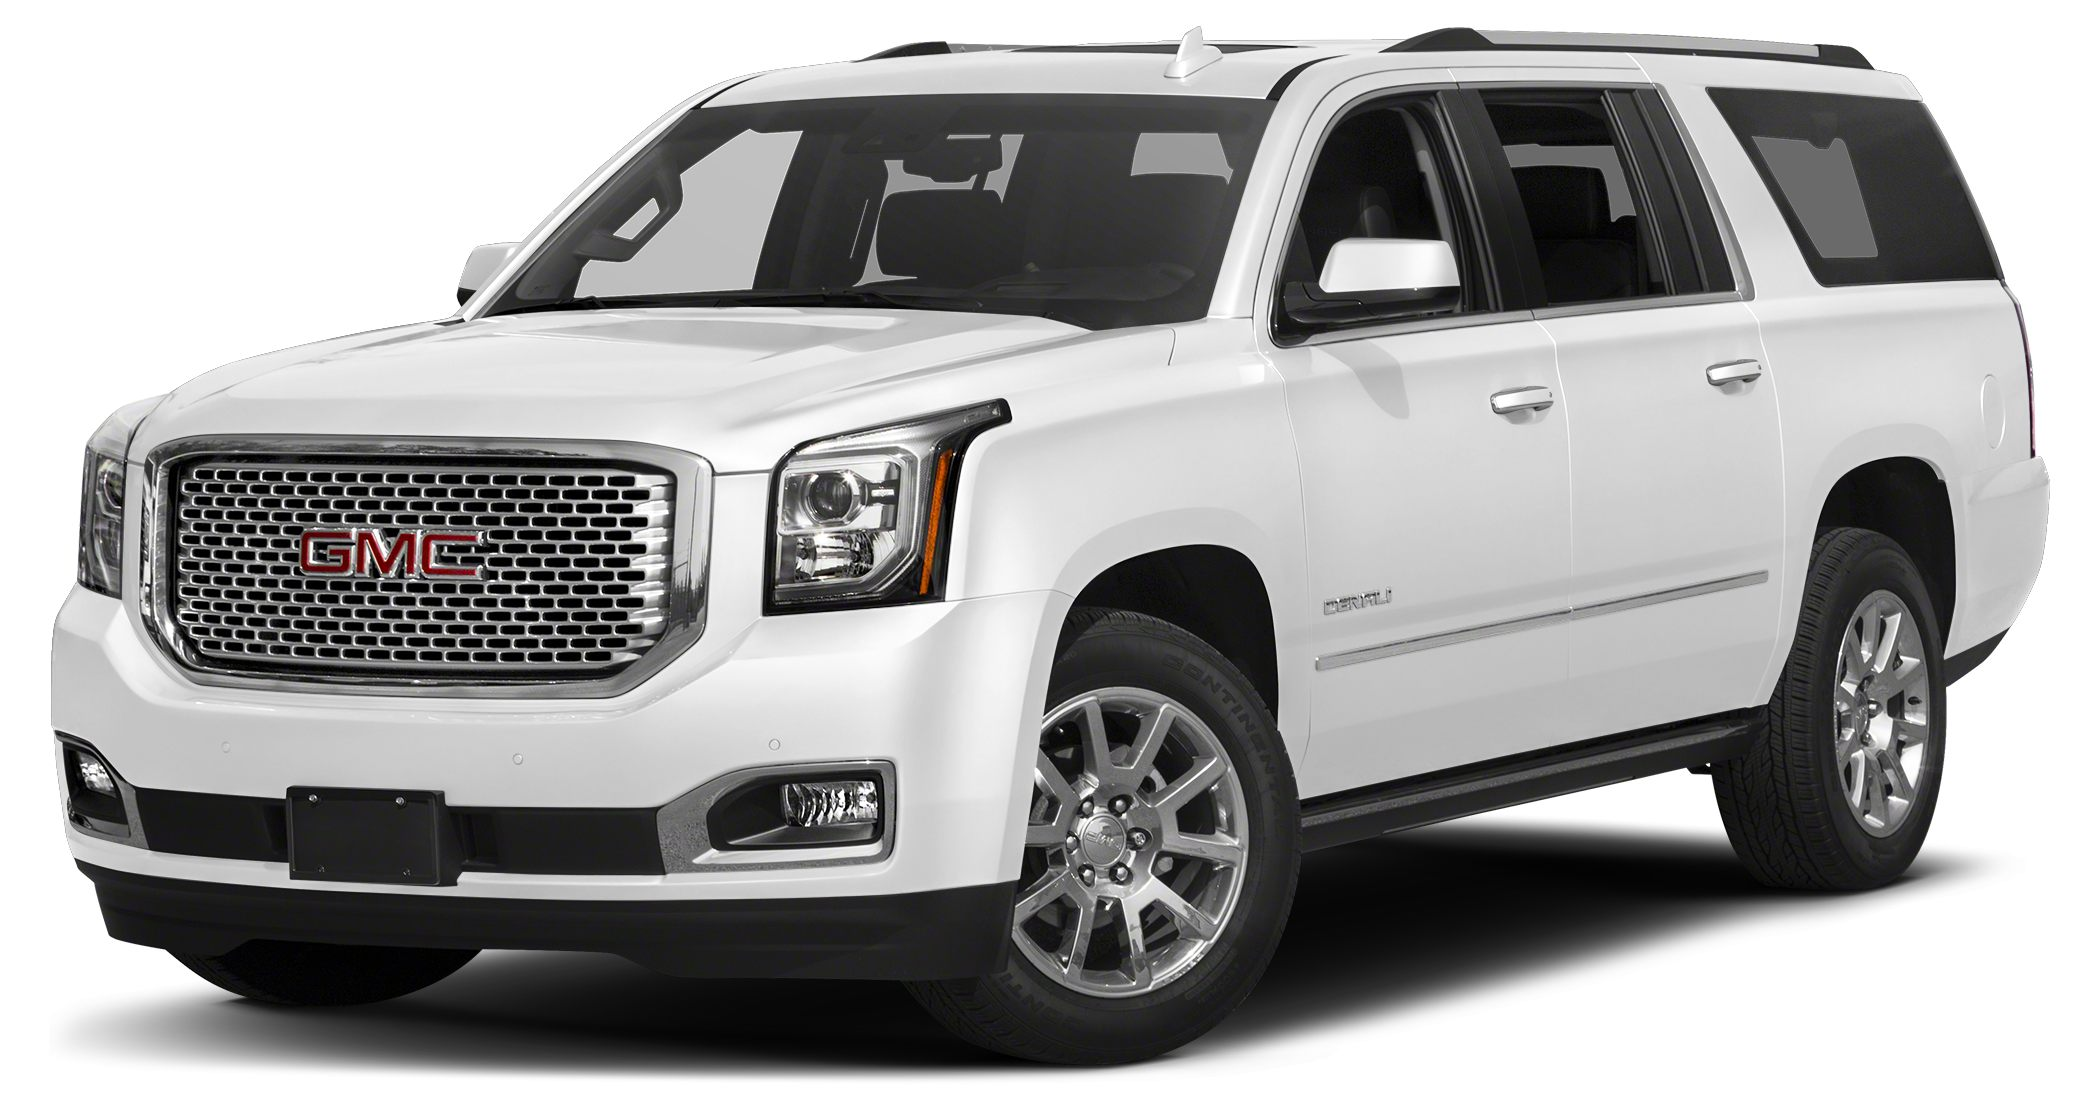 2016 GMC Yukon XL Denali NAV 3rd Row Seat Heated Leather Seats Rear Air Tow Hitch Alloy Wheel